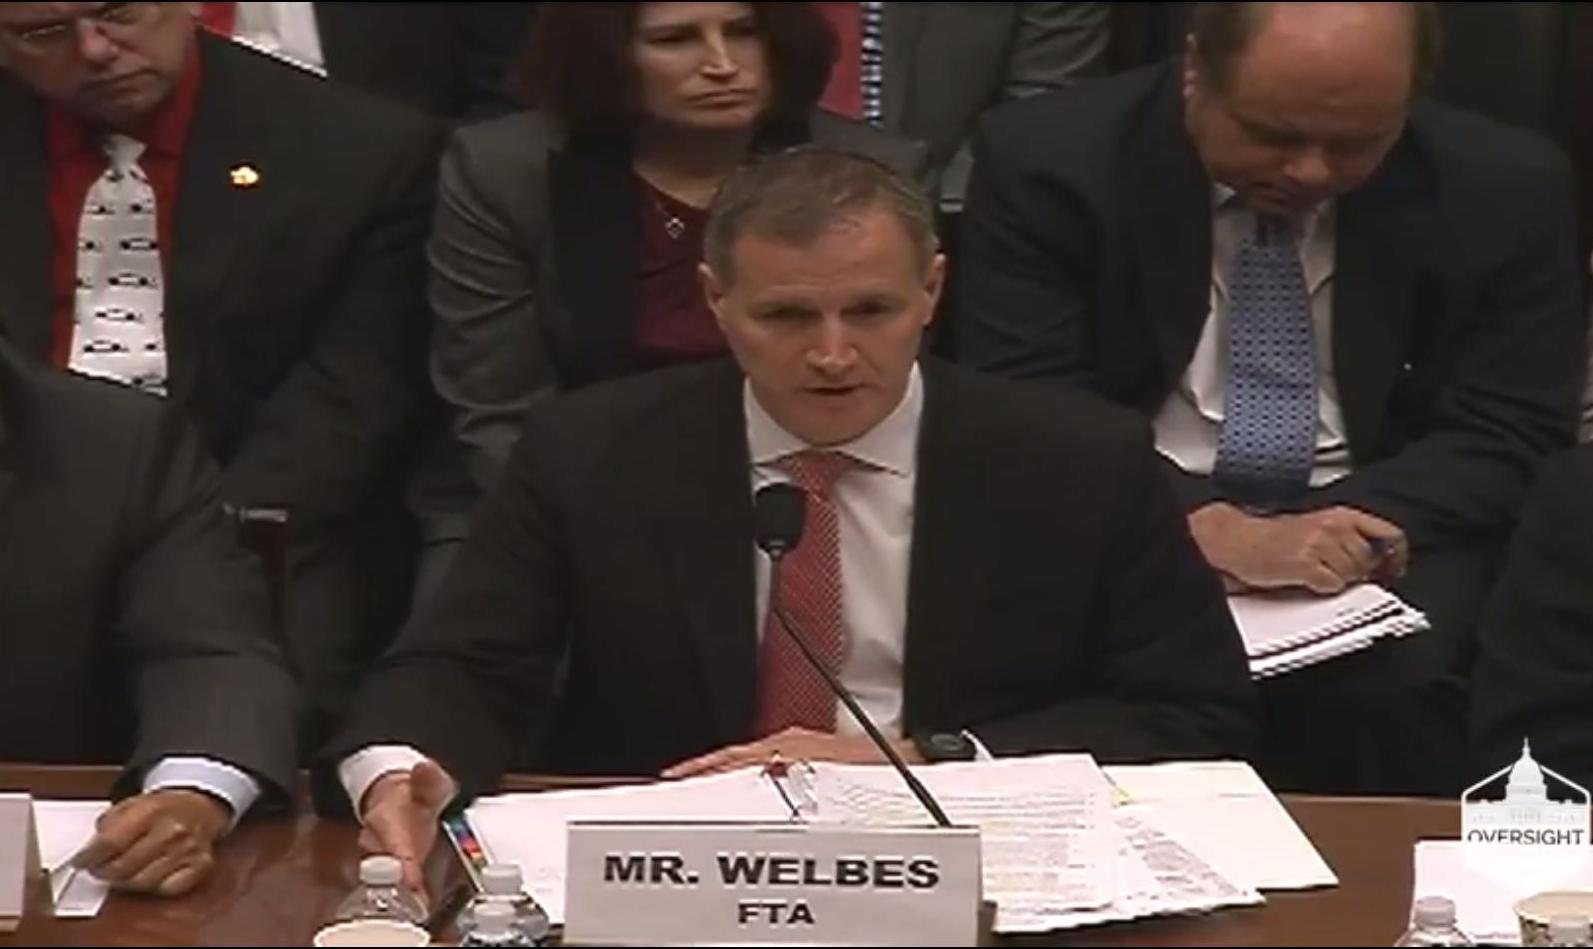 FTA Executive Director Matthew Welbes testifying before House subcommittee